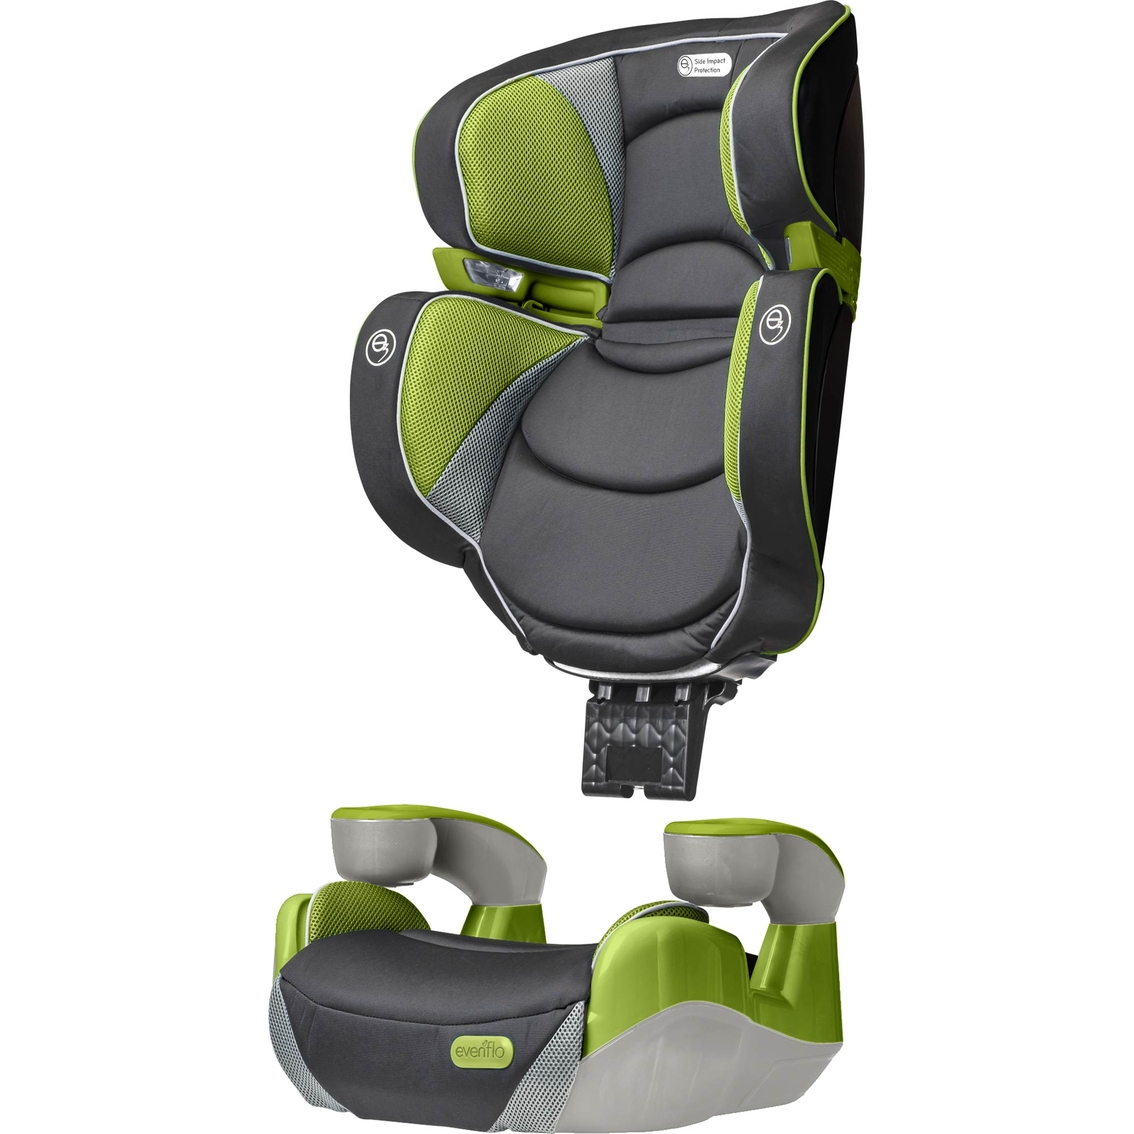 evenflo rightfit booster car seat car booster seats baby toys shop the exchange. Black Bedroom Furniture Sets. Home Design Ideas